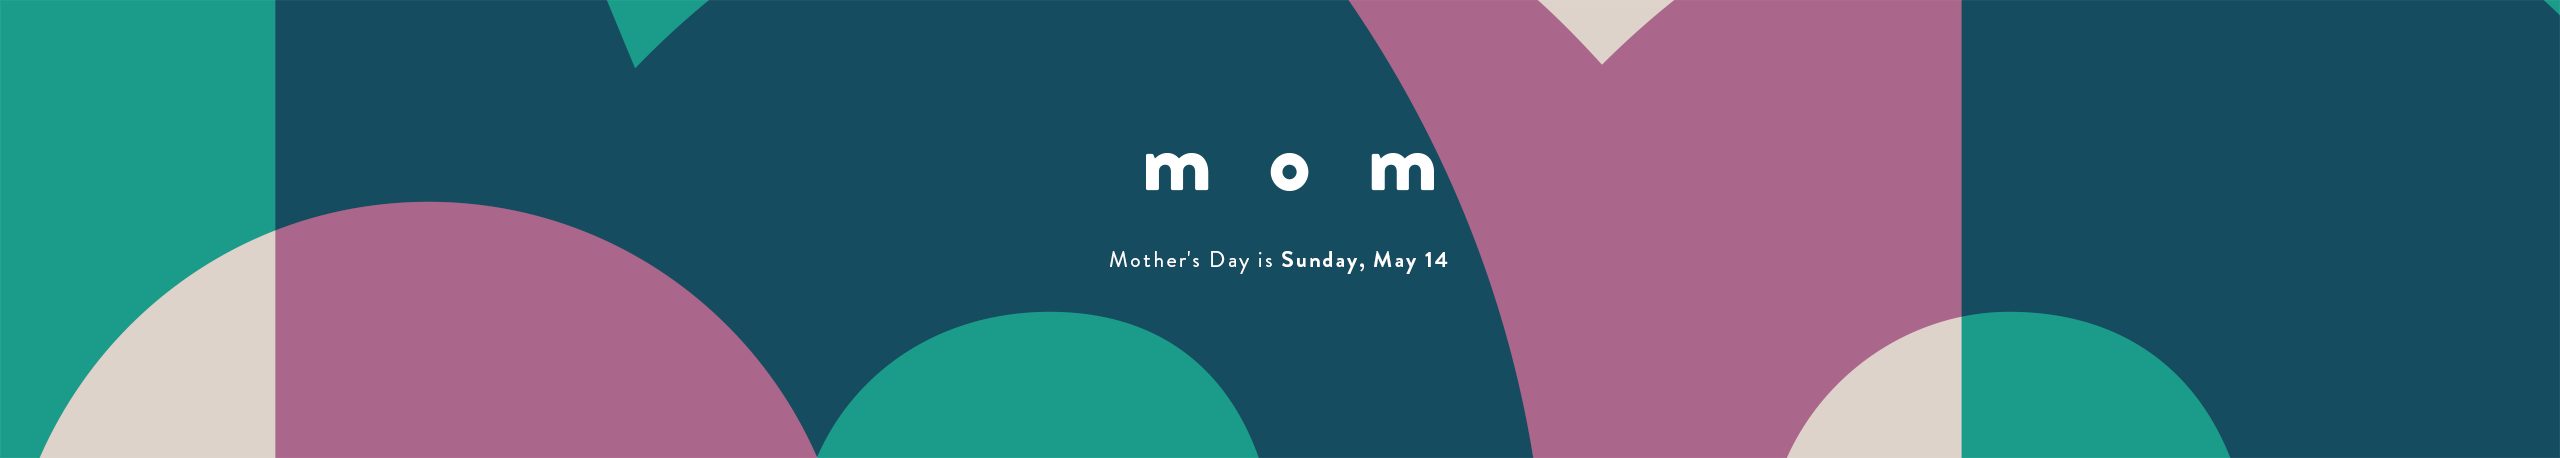 Mom: Mother's Day is Sunday, May 14.